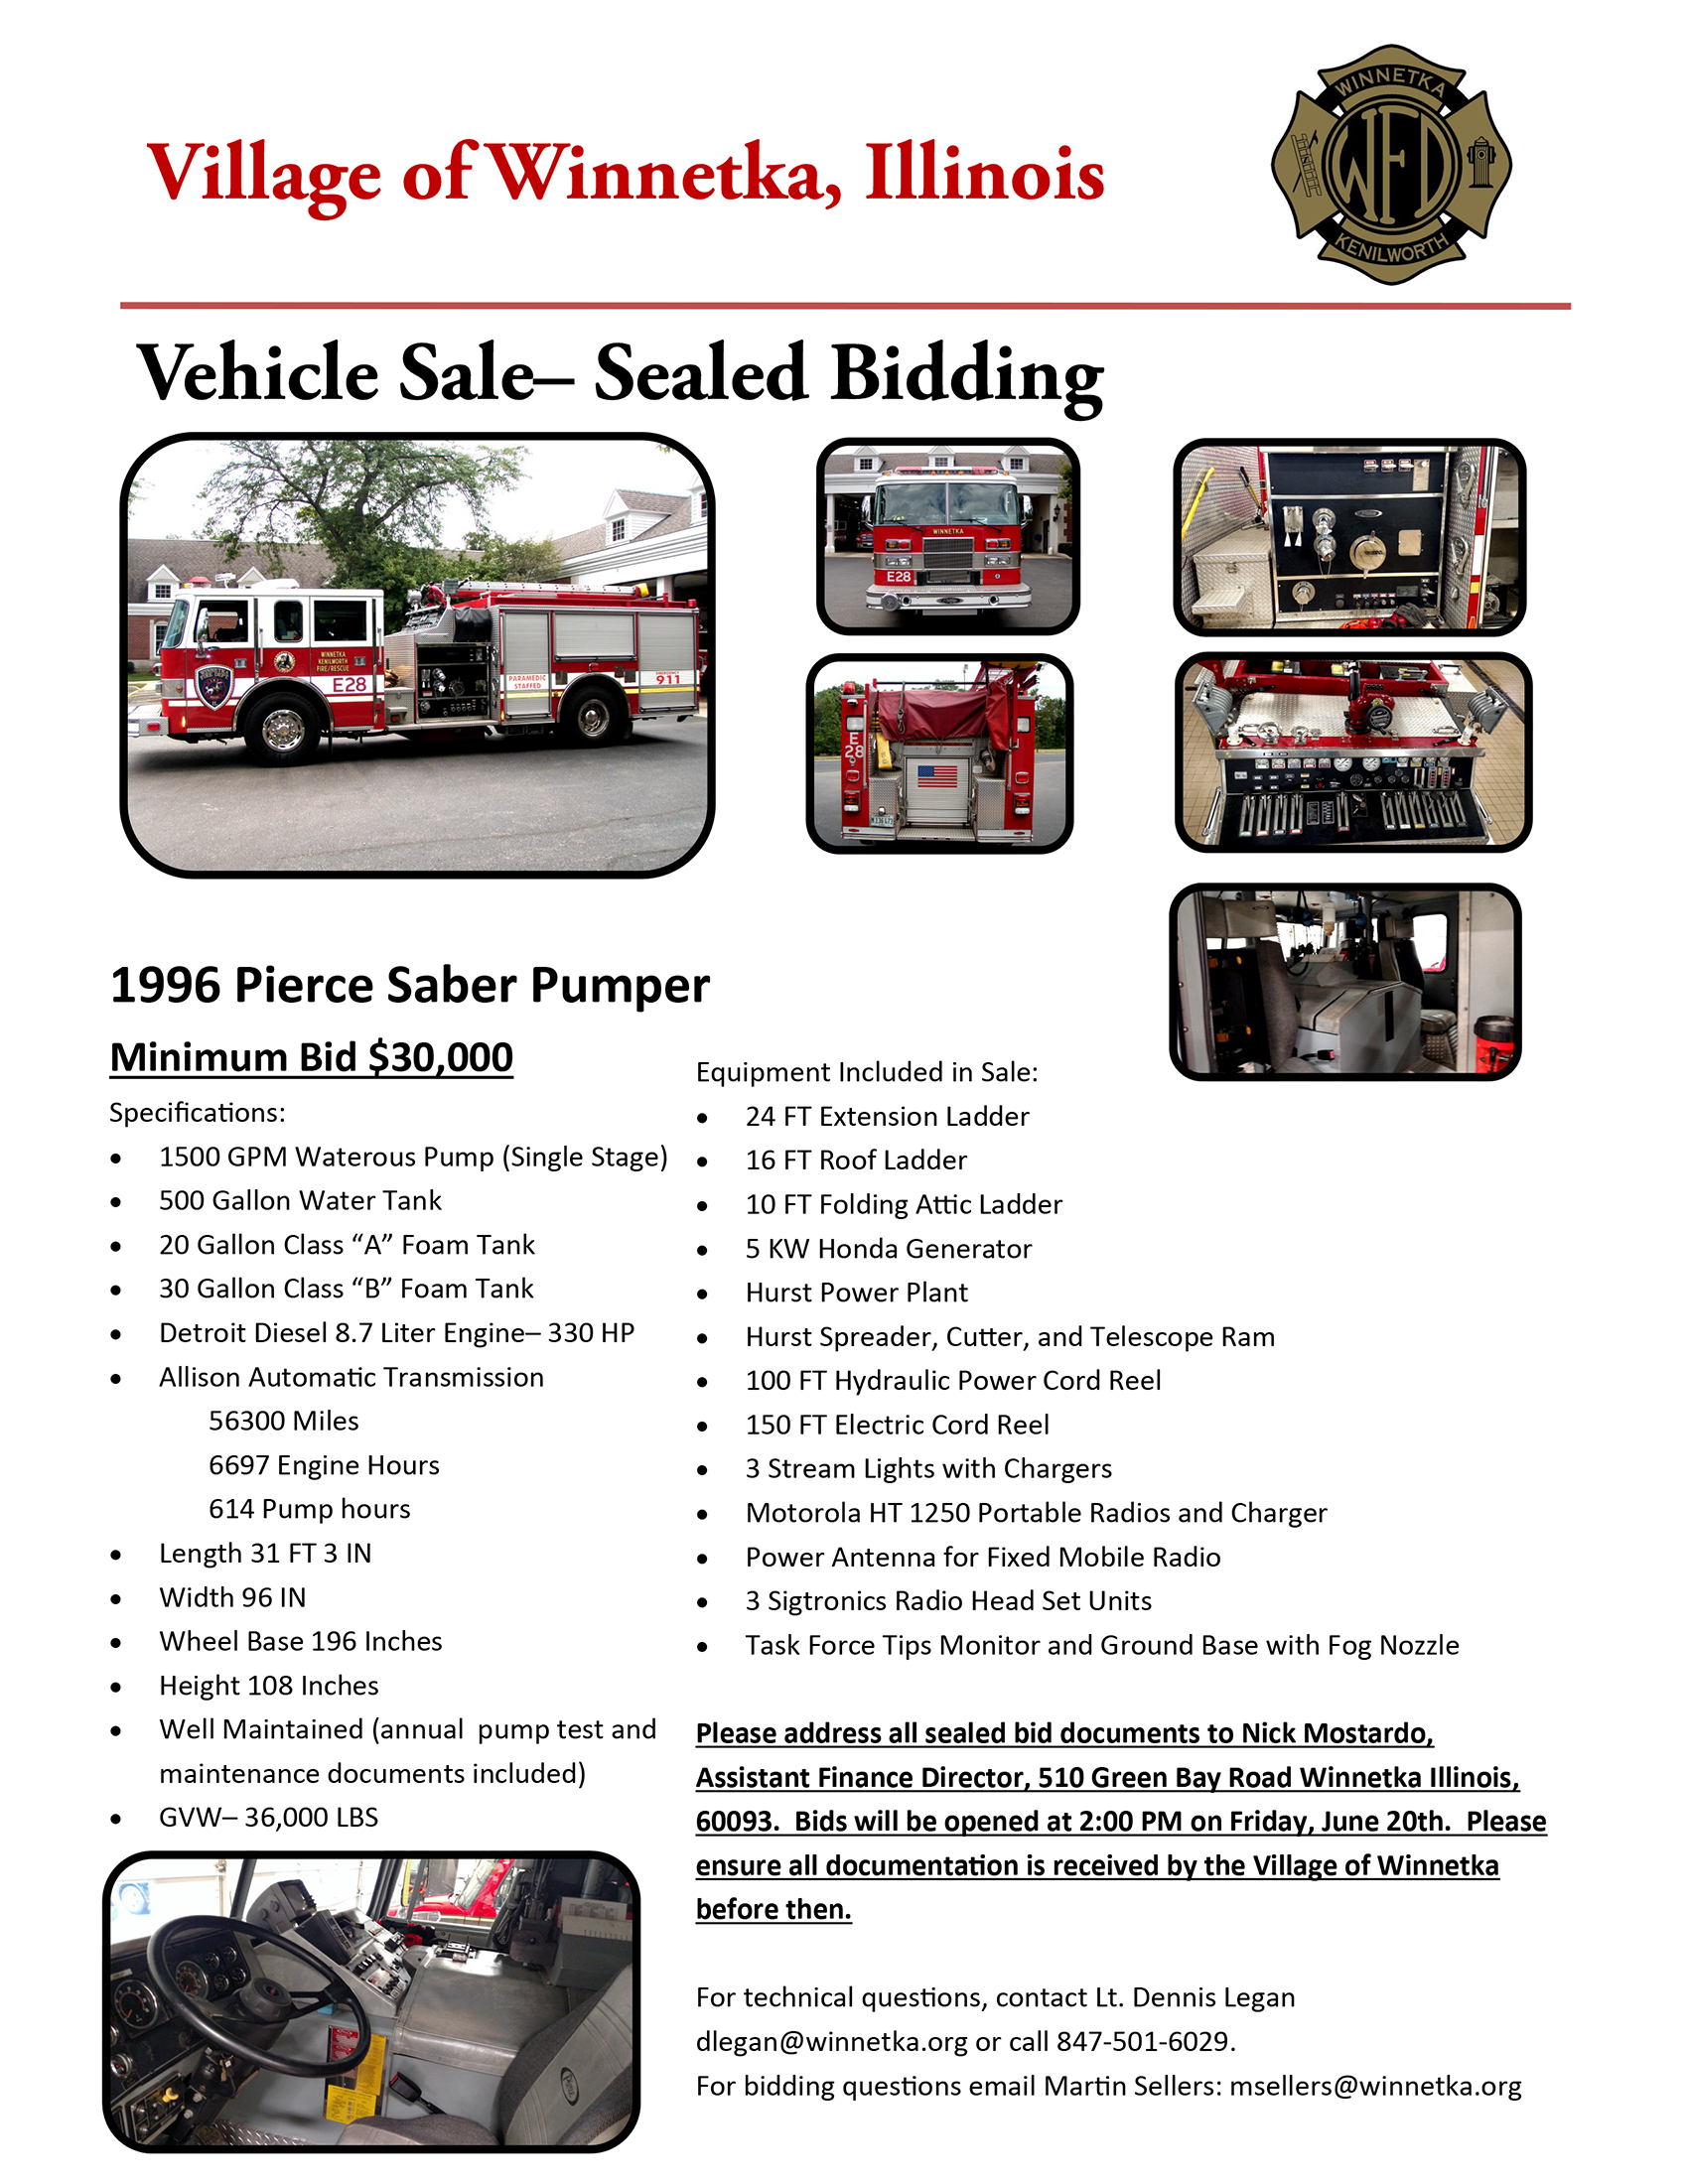 Pierce fire engine for sale in Winnetka Illinois